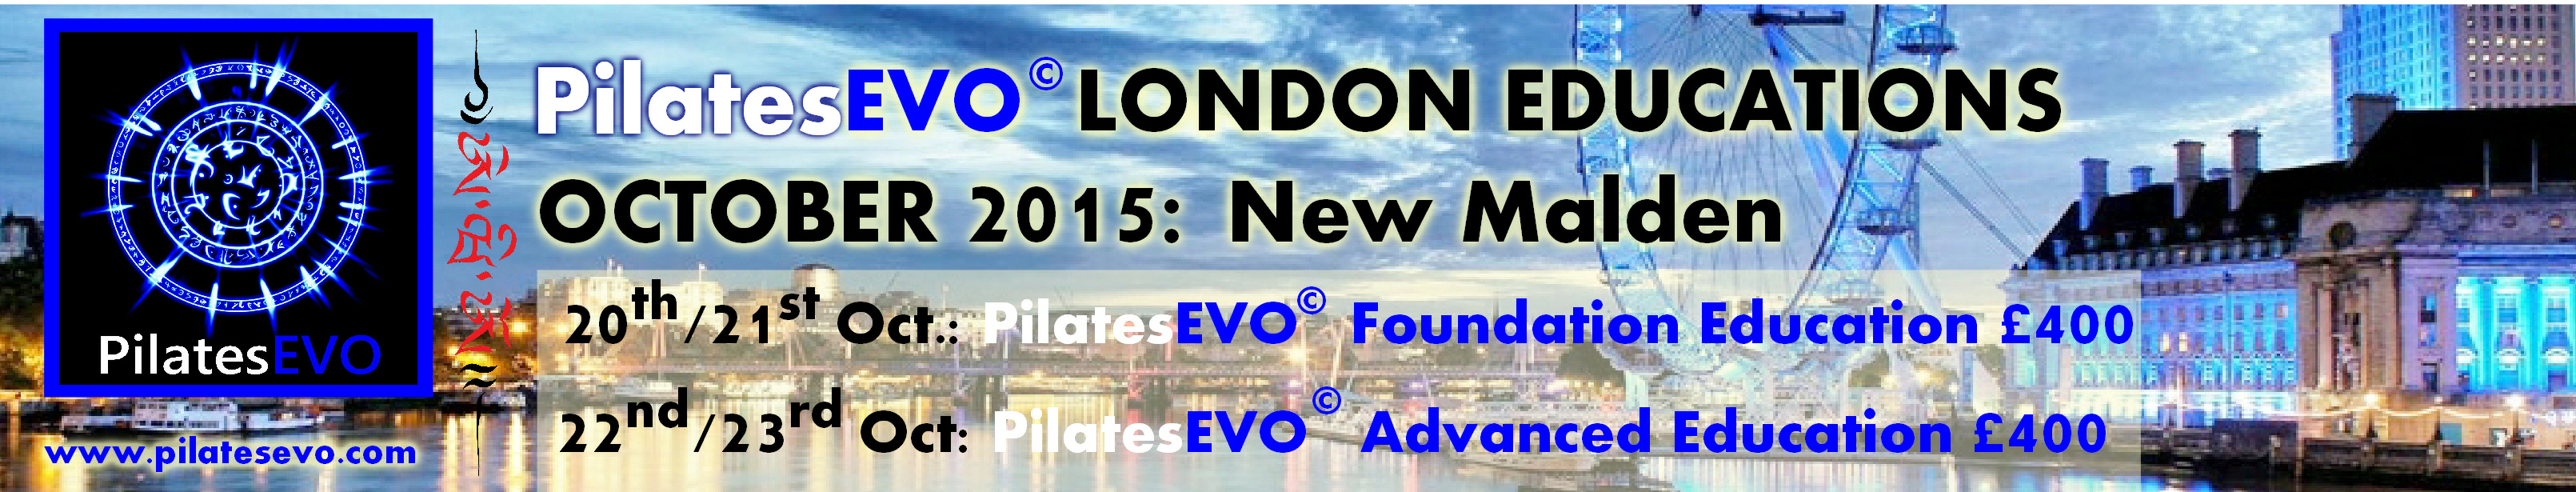 Pilates EVO London Educations